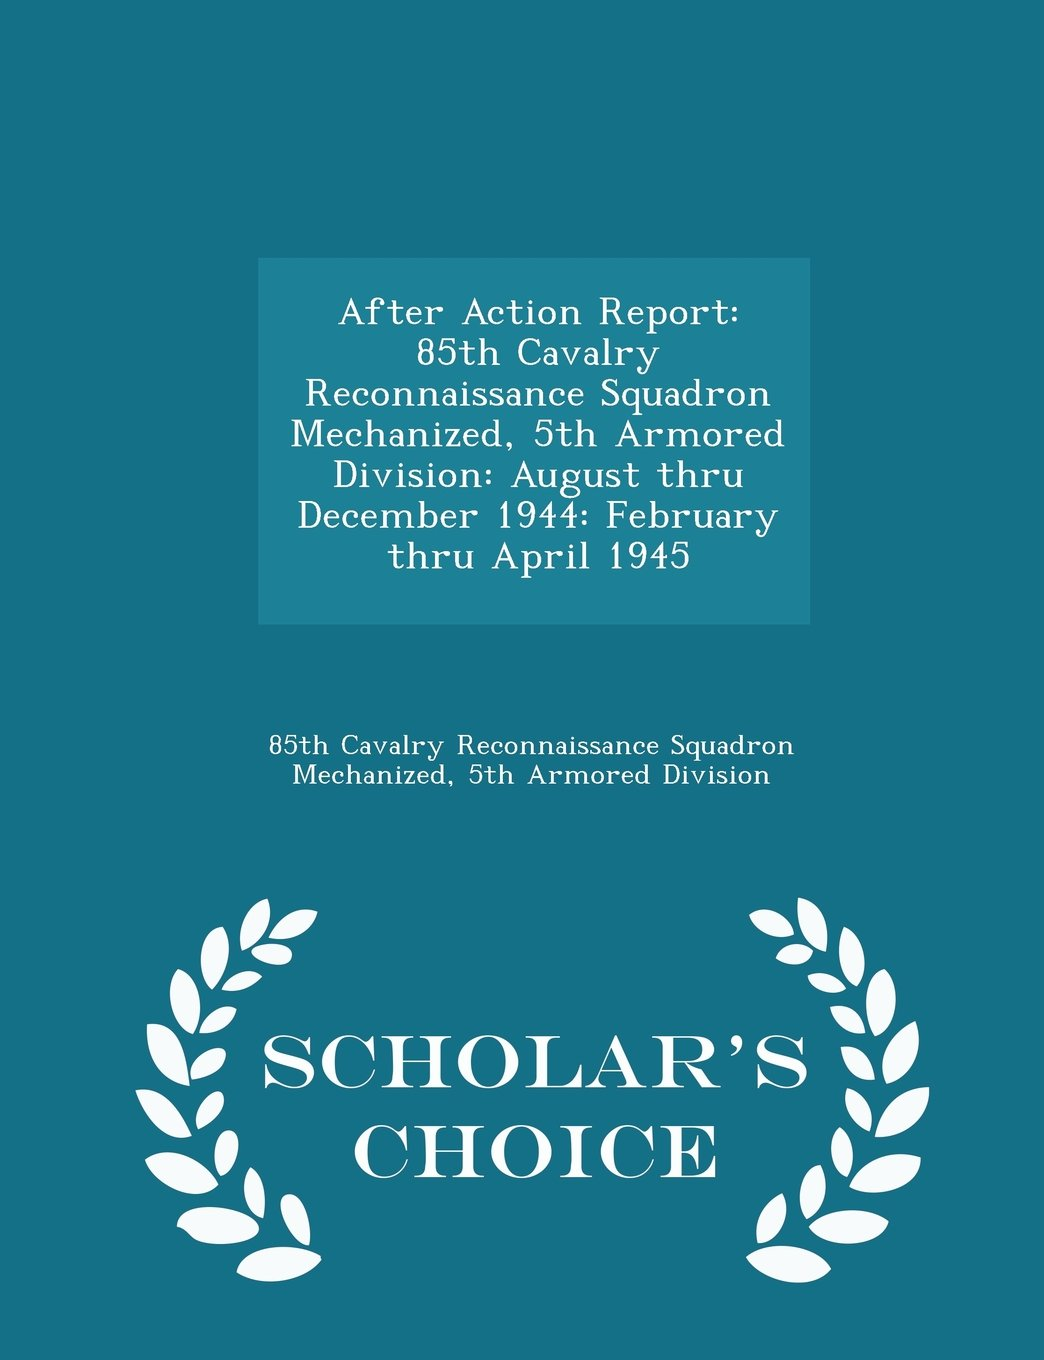 Download After Action Report: 85th Cavalry Reconnaissance Squadron Mechanized, 5th Armored Division: August thru December 1944: February thru April 1945 - Scholar's Choice Edition pdf epub